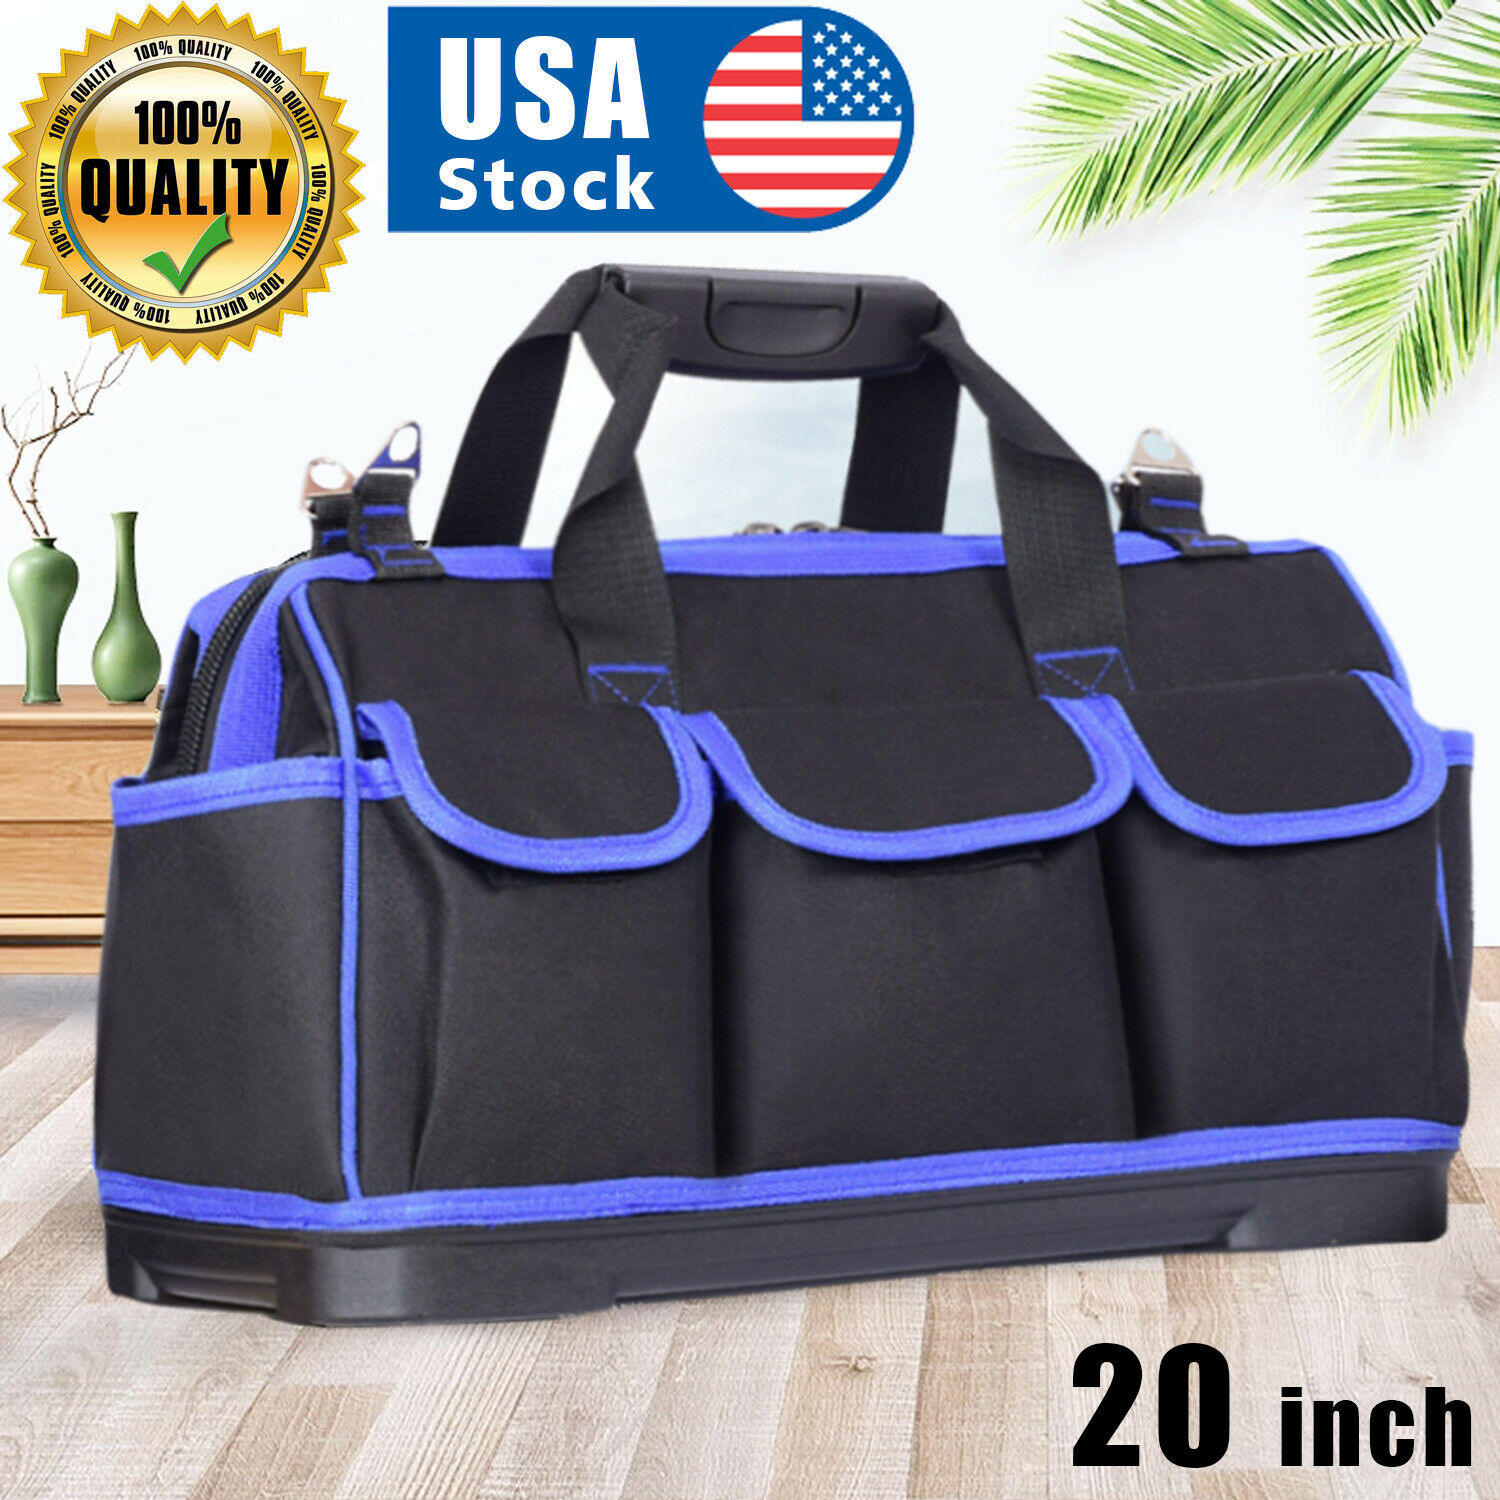 USA Tool Bags 20 inch Waterproof Top Wide Mouth Electrician Bags Pouch Organizer Home & Garden